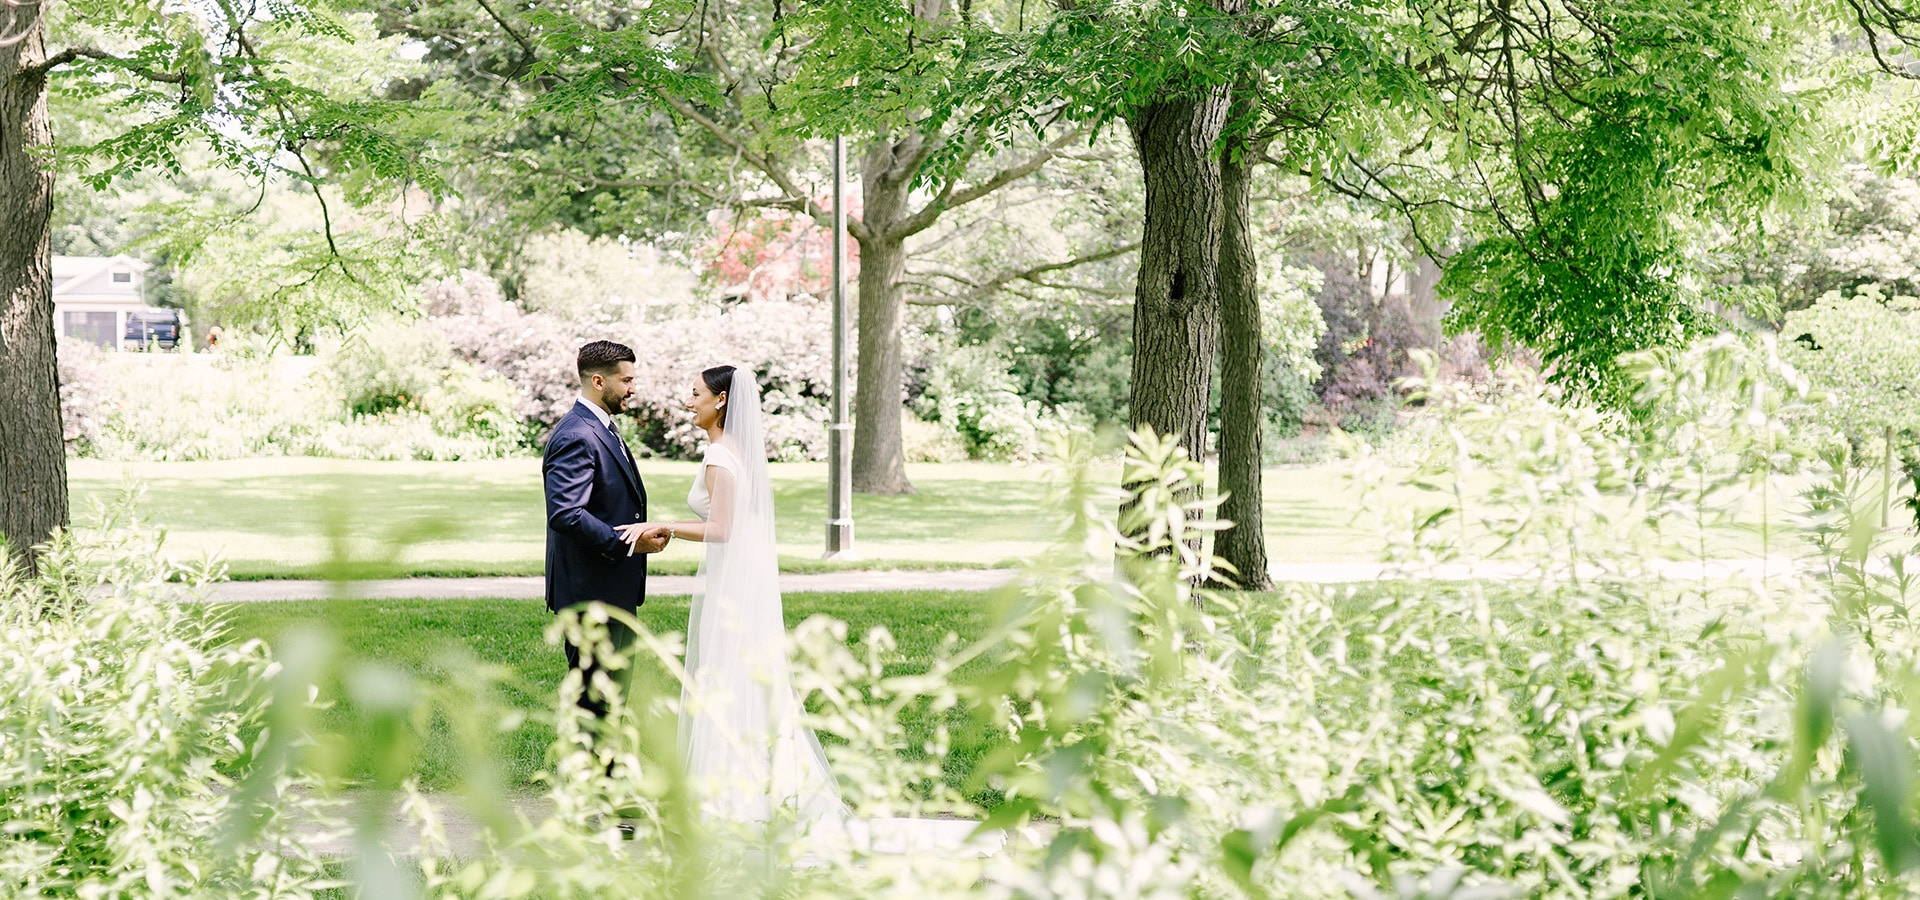 Hero image for Laura and Mike's Exquisite Wedding at Earth to Table Farm